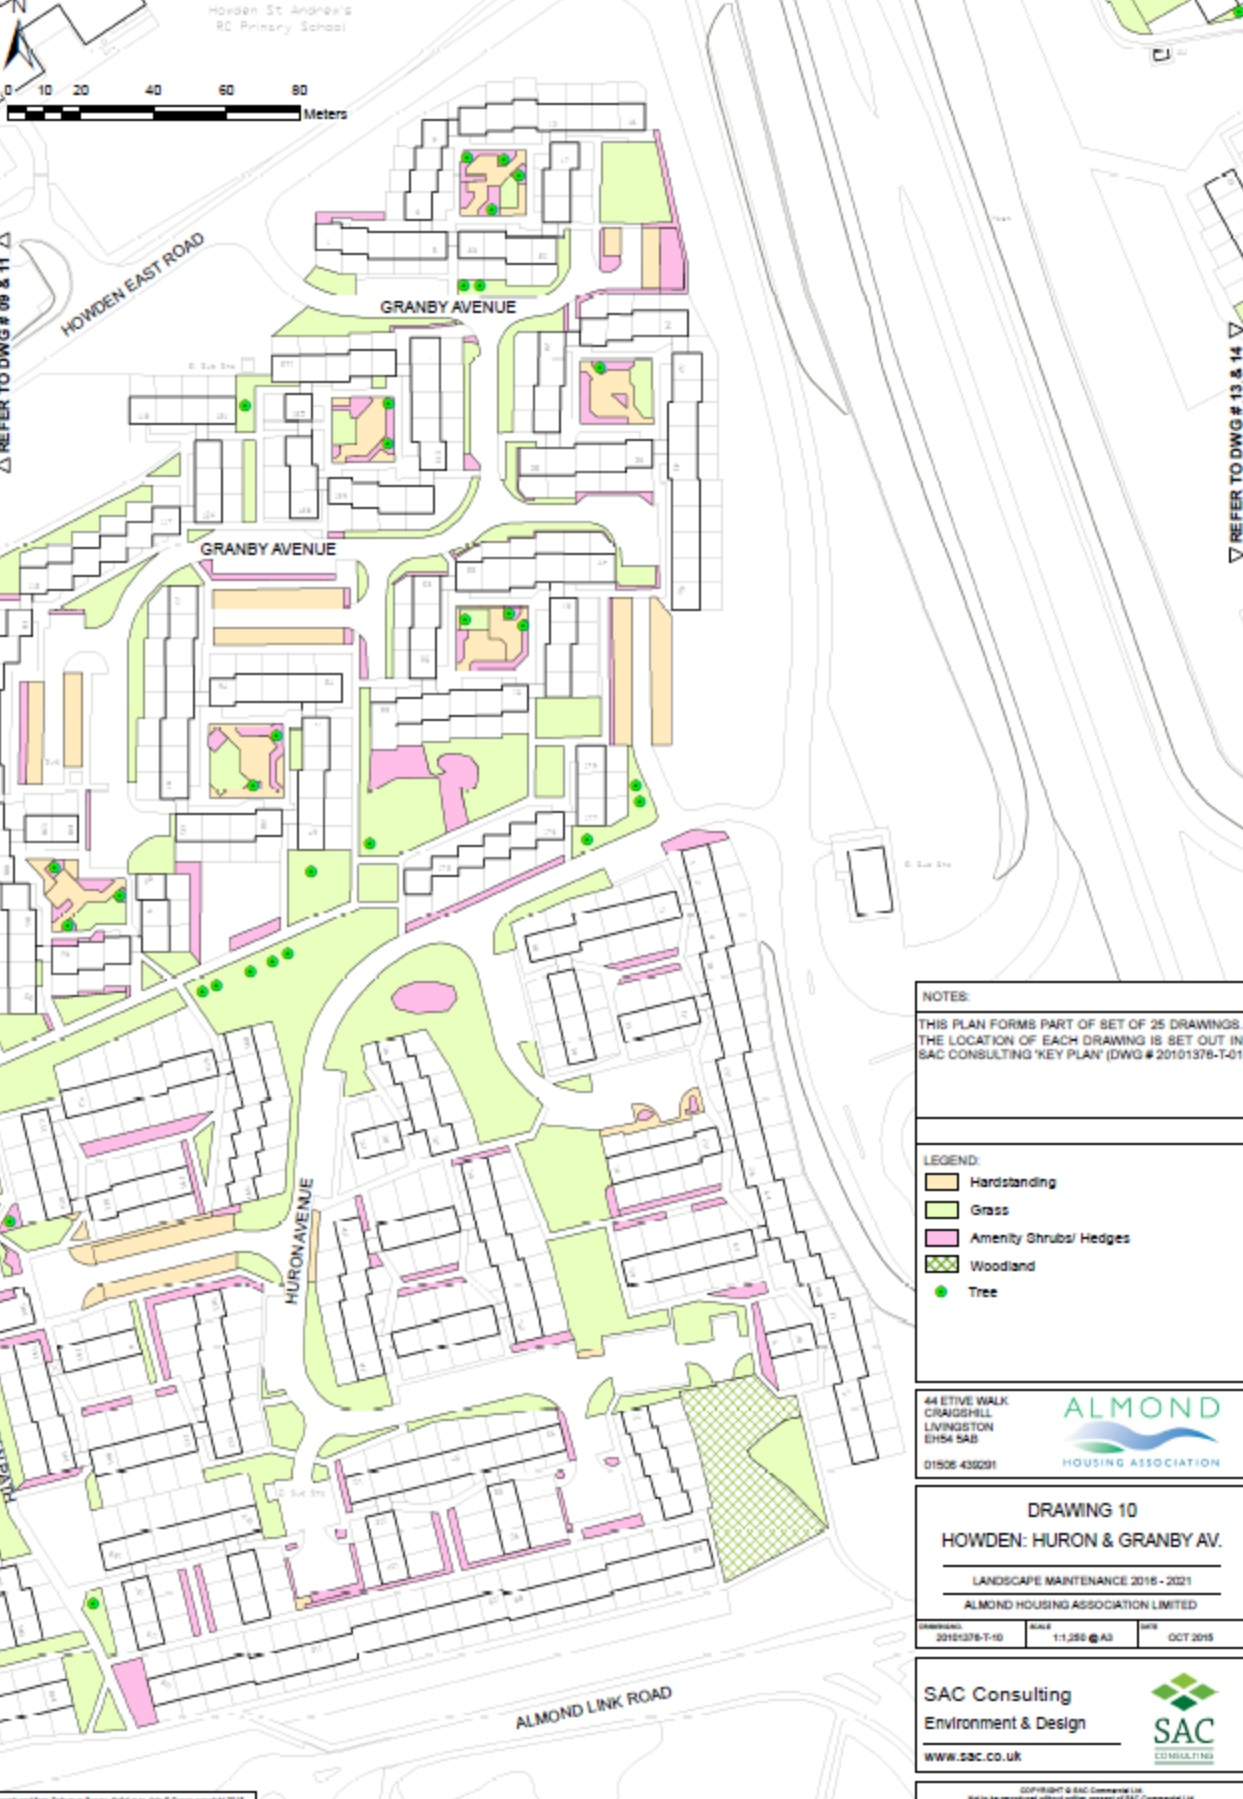 Estate Management map Howden 4